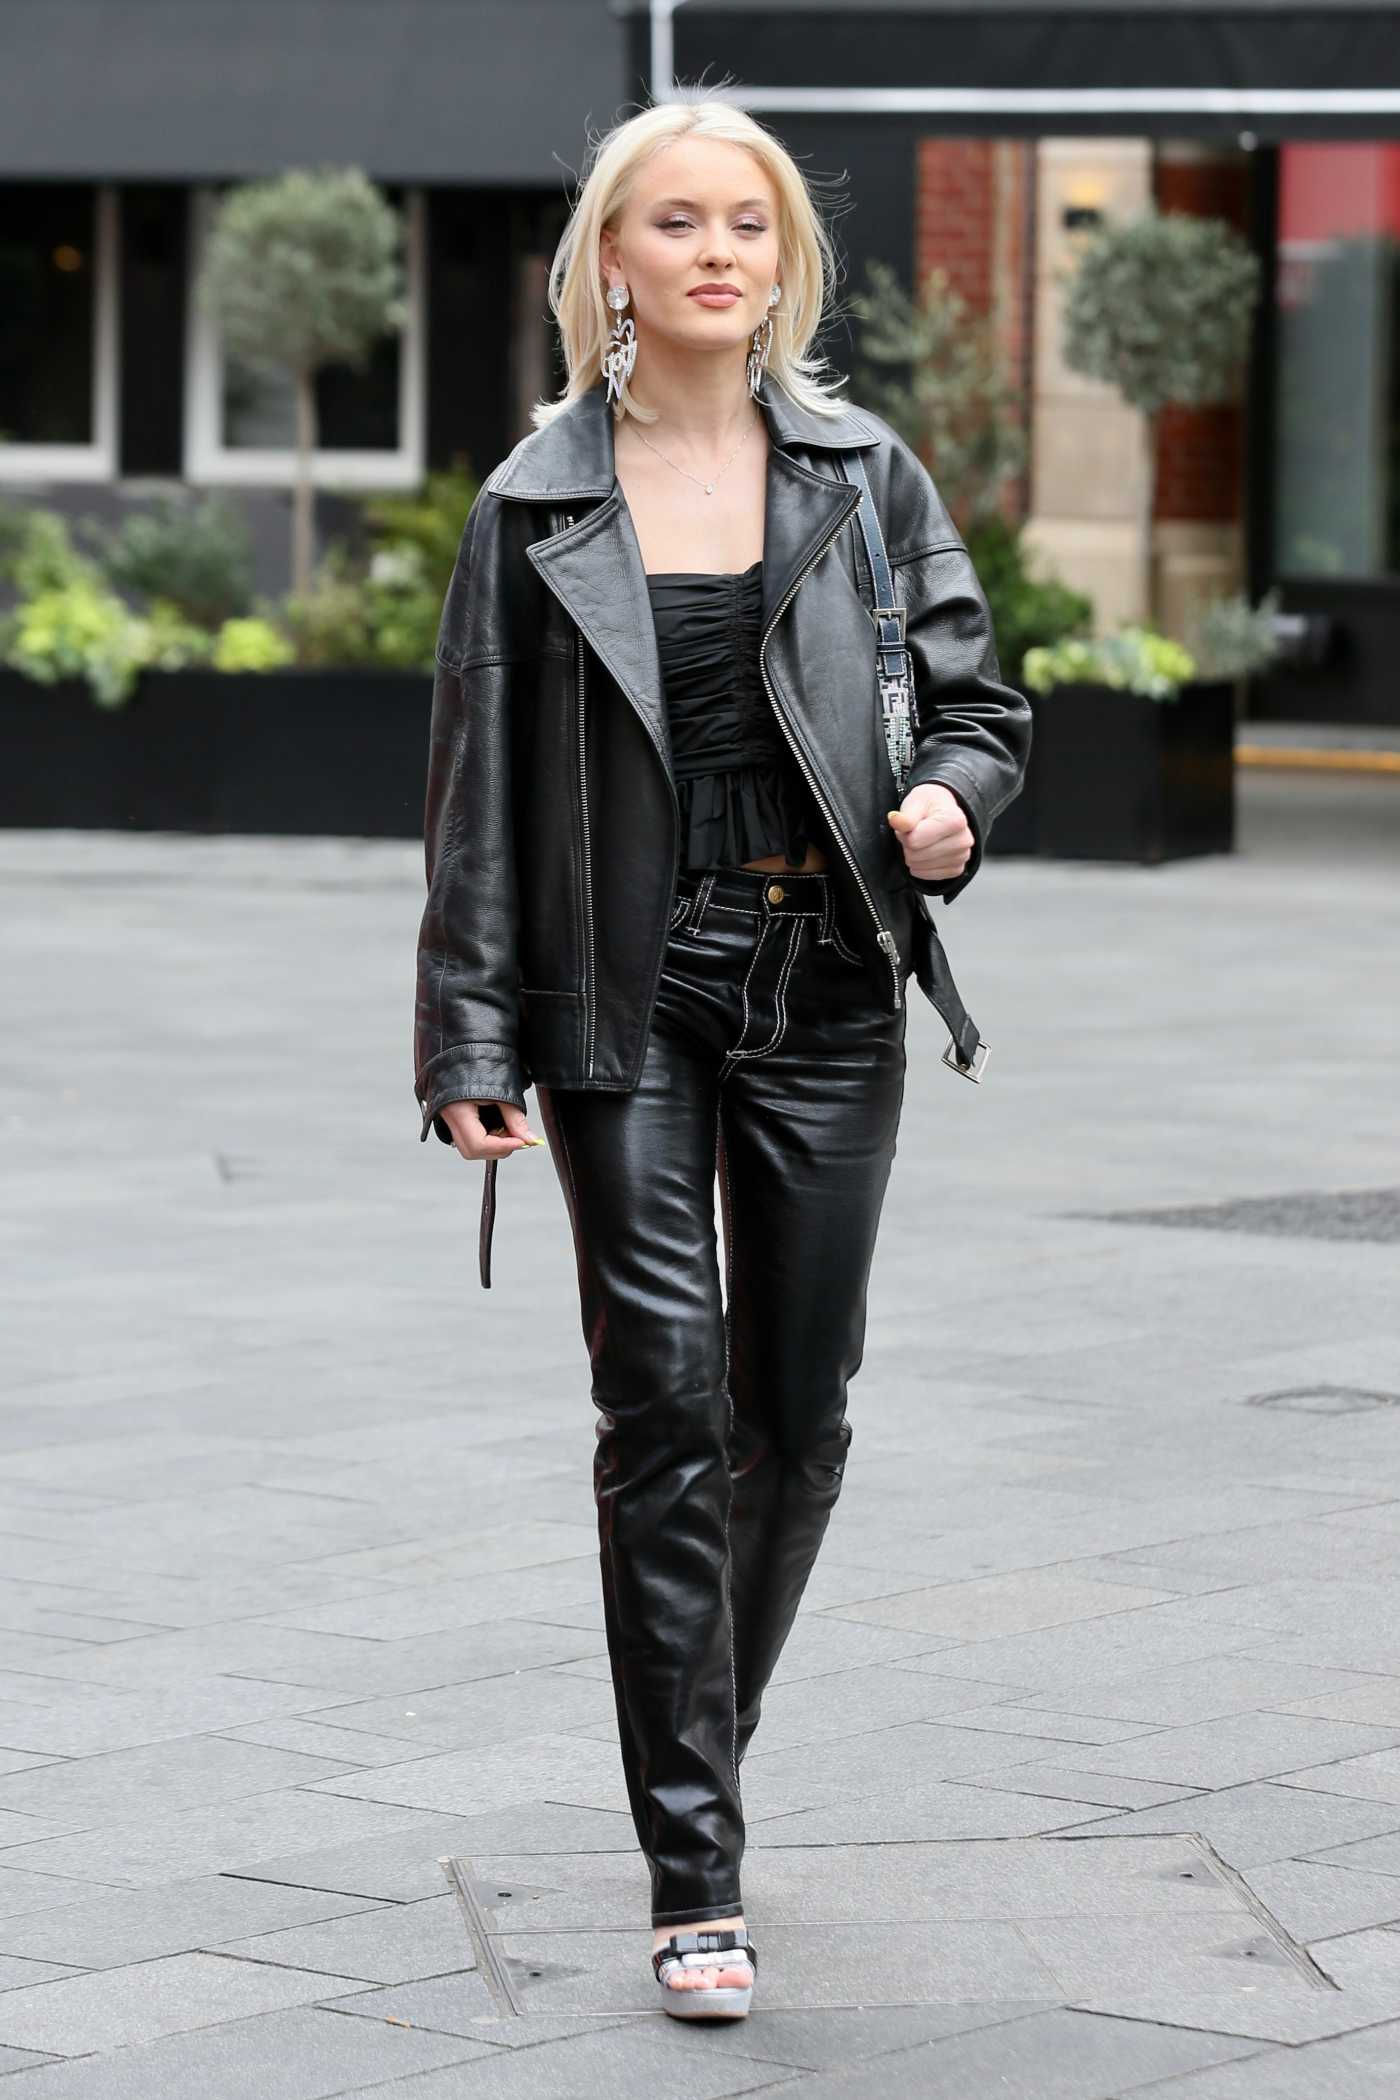 Zara Larsson in a Black Leather Jacket Visits Global Radio Studios in London 03/27/2019